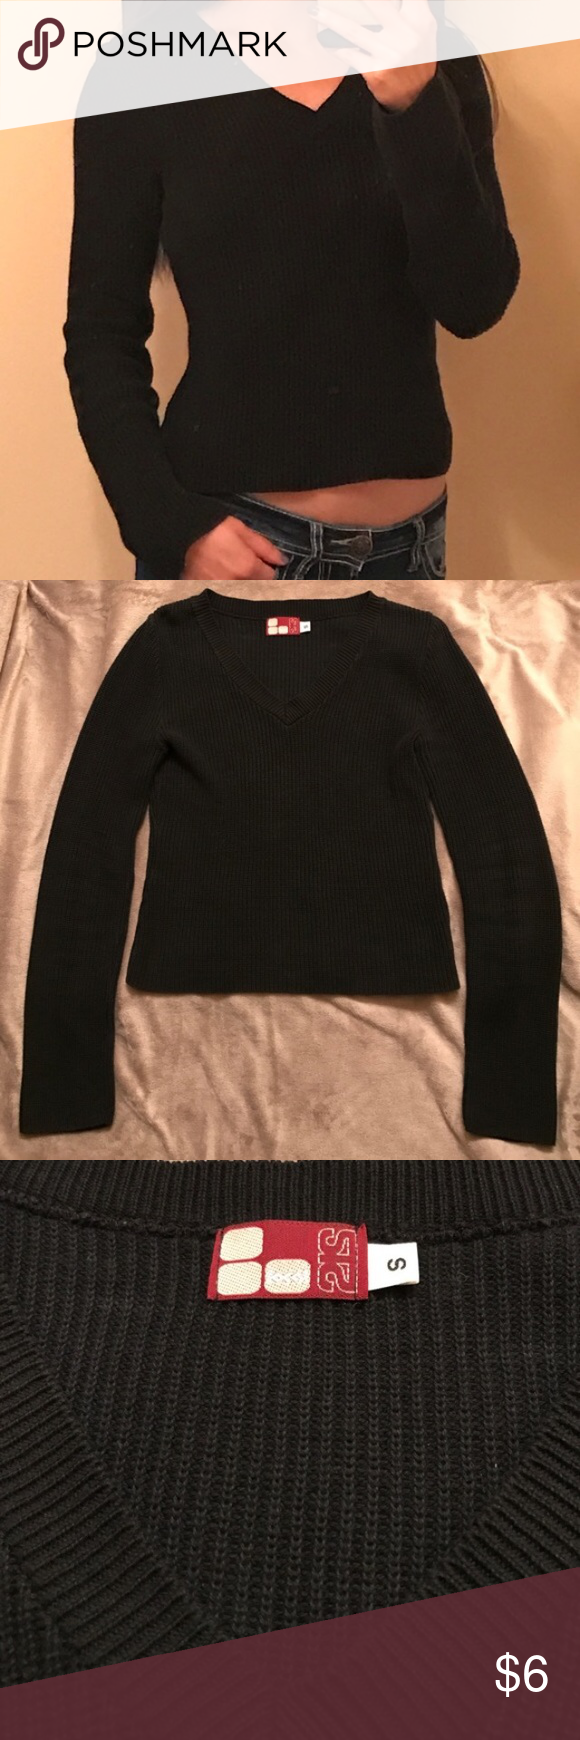 Ribbed V-Neck Sweater 100% cotton knit sweater in good used condition.  Purchased from Alloy.  Price is firm unless bundled. ALLOY Sweaters V-Necks